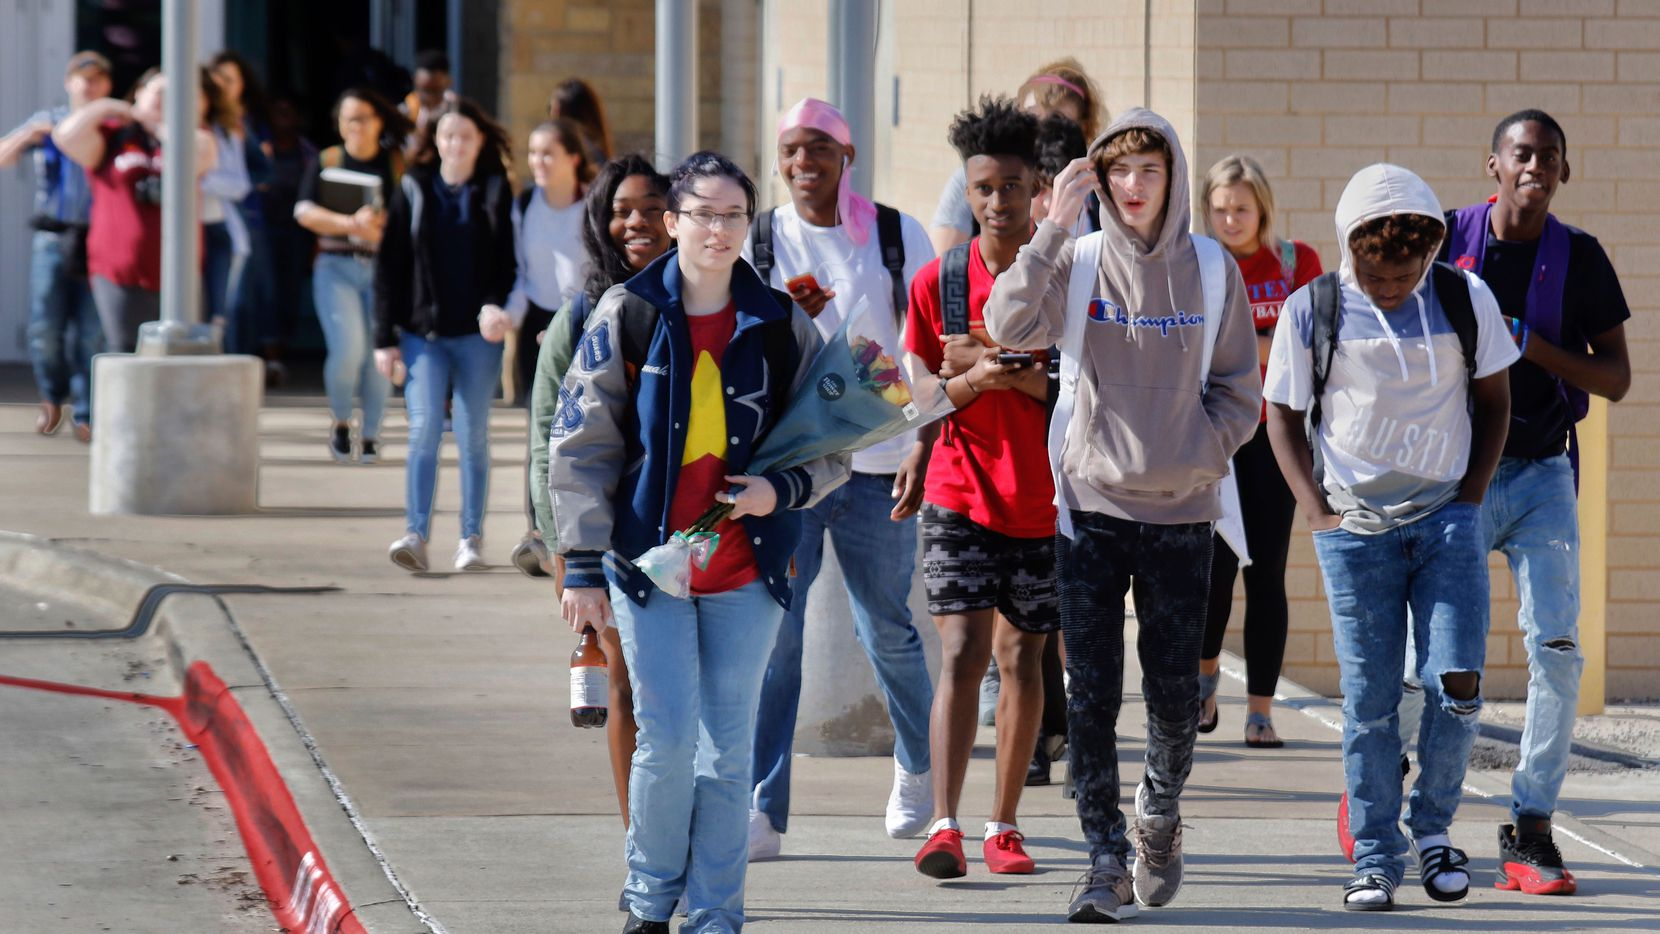 Students at Frisco ISD's Lone Star High School participated in the National School Walkout on Friday morning.